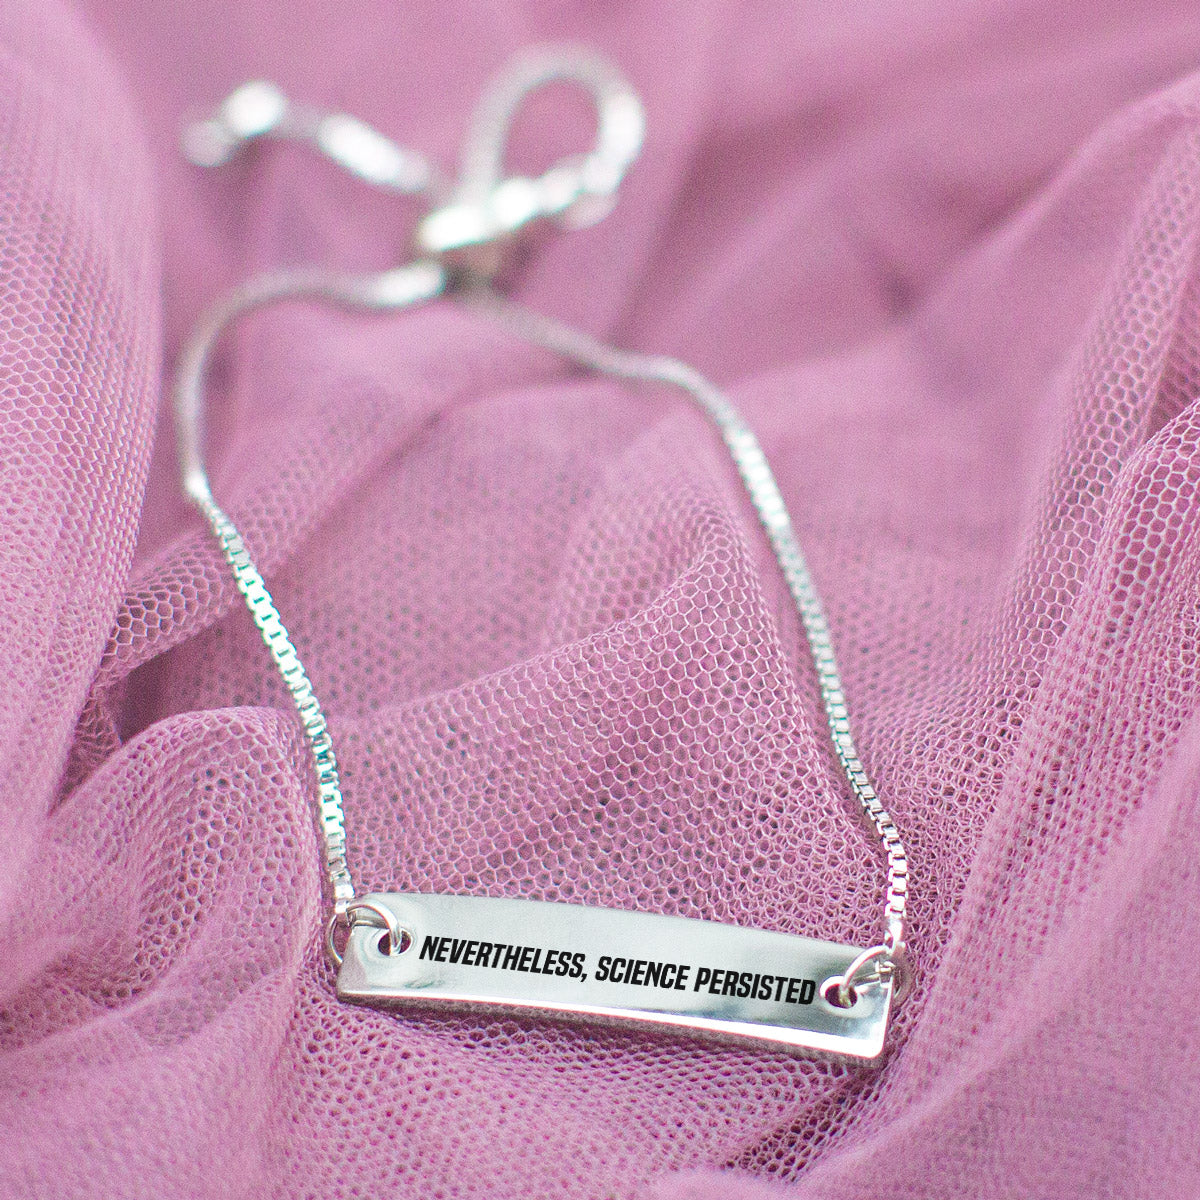 Nevertheless, Science Persisted Silver Bar Adjustable Bracelet - pipercleo.com